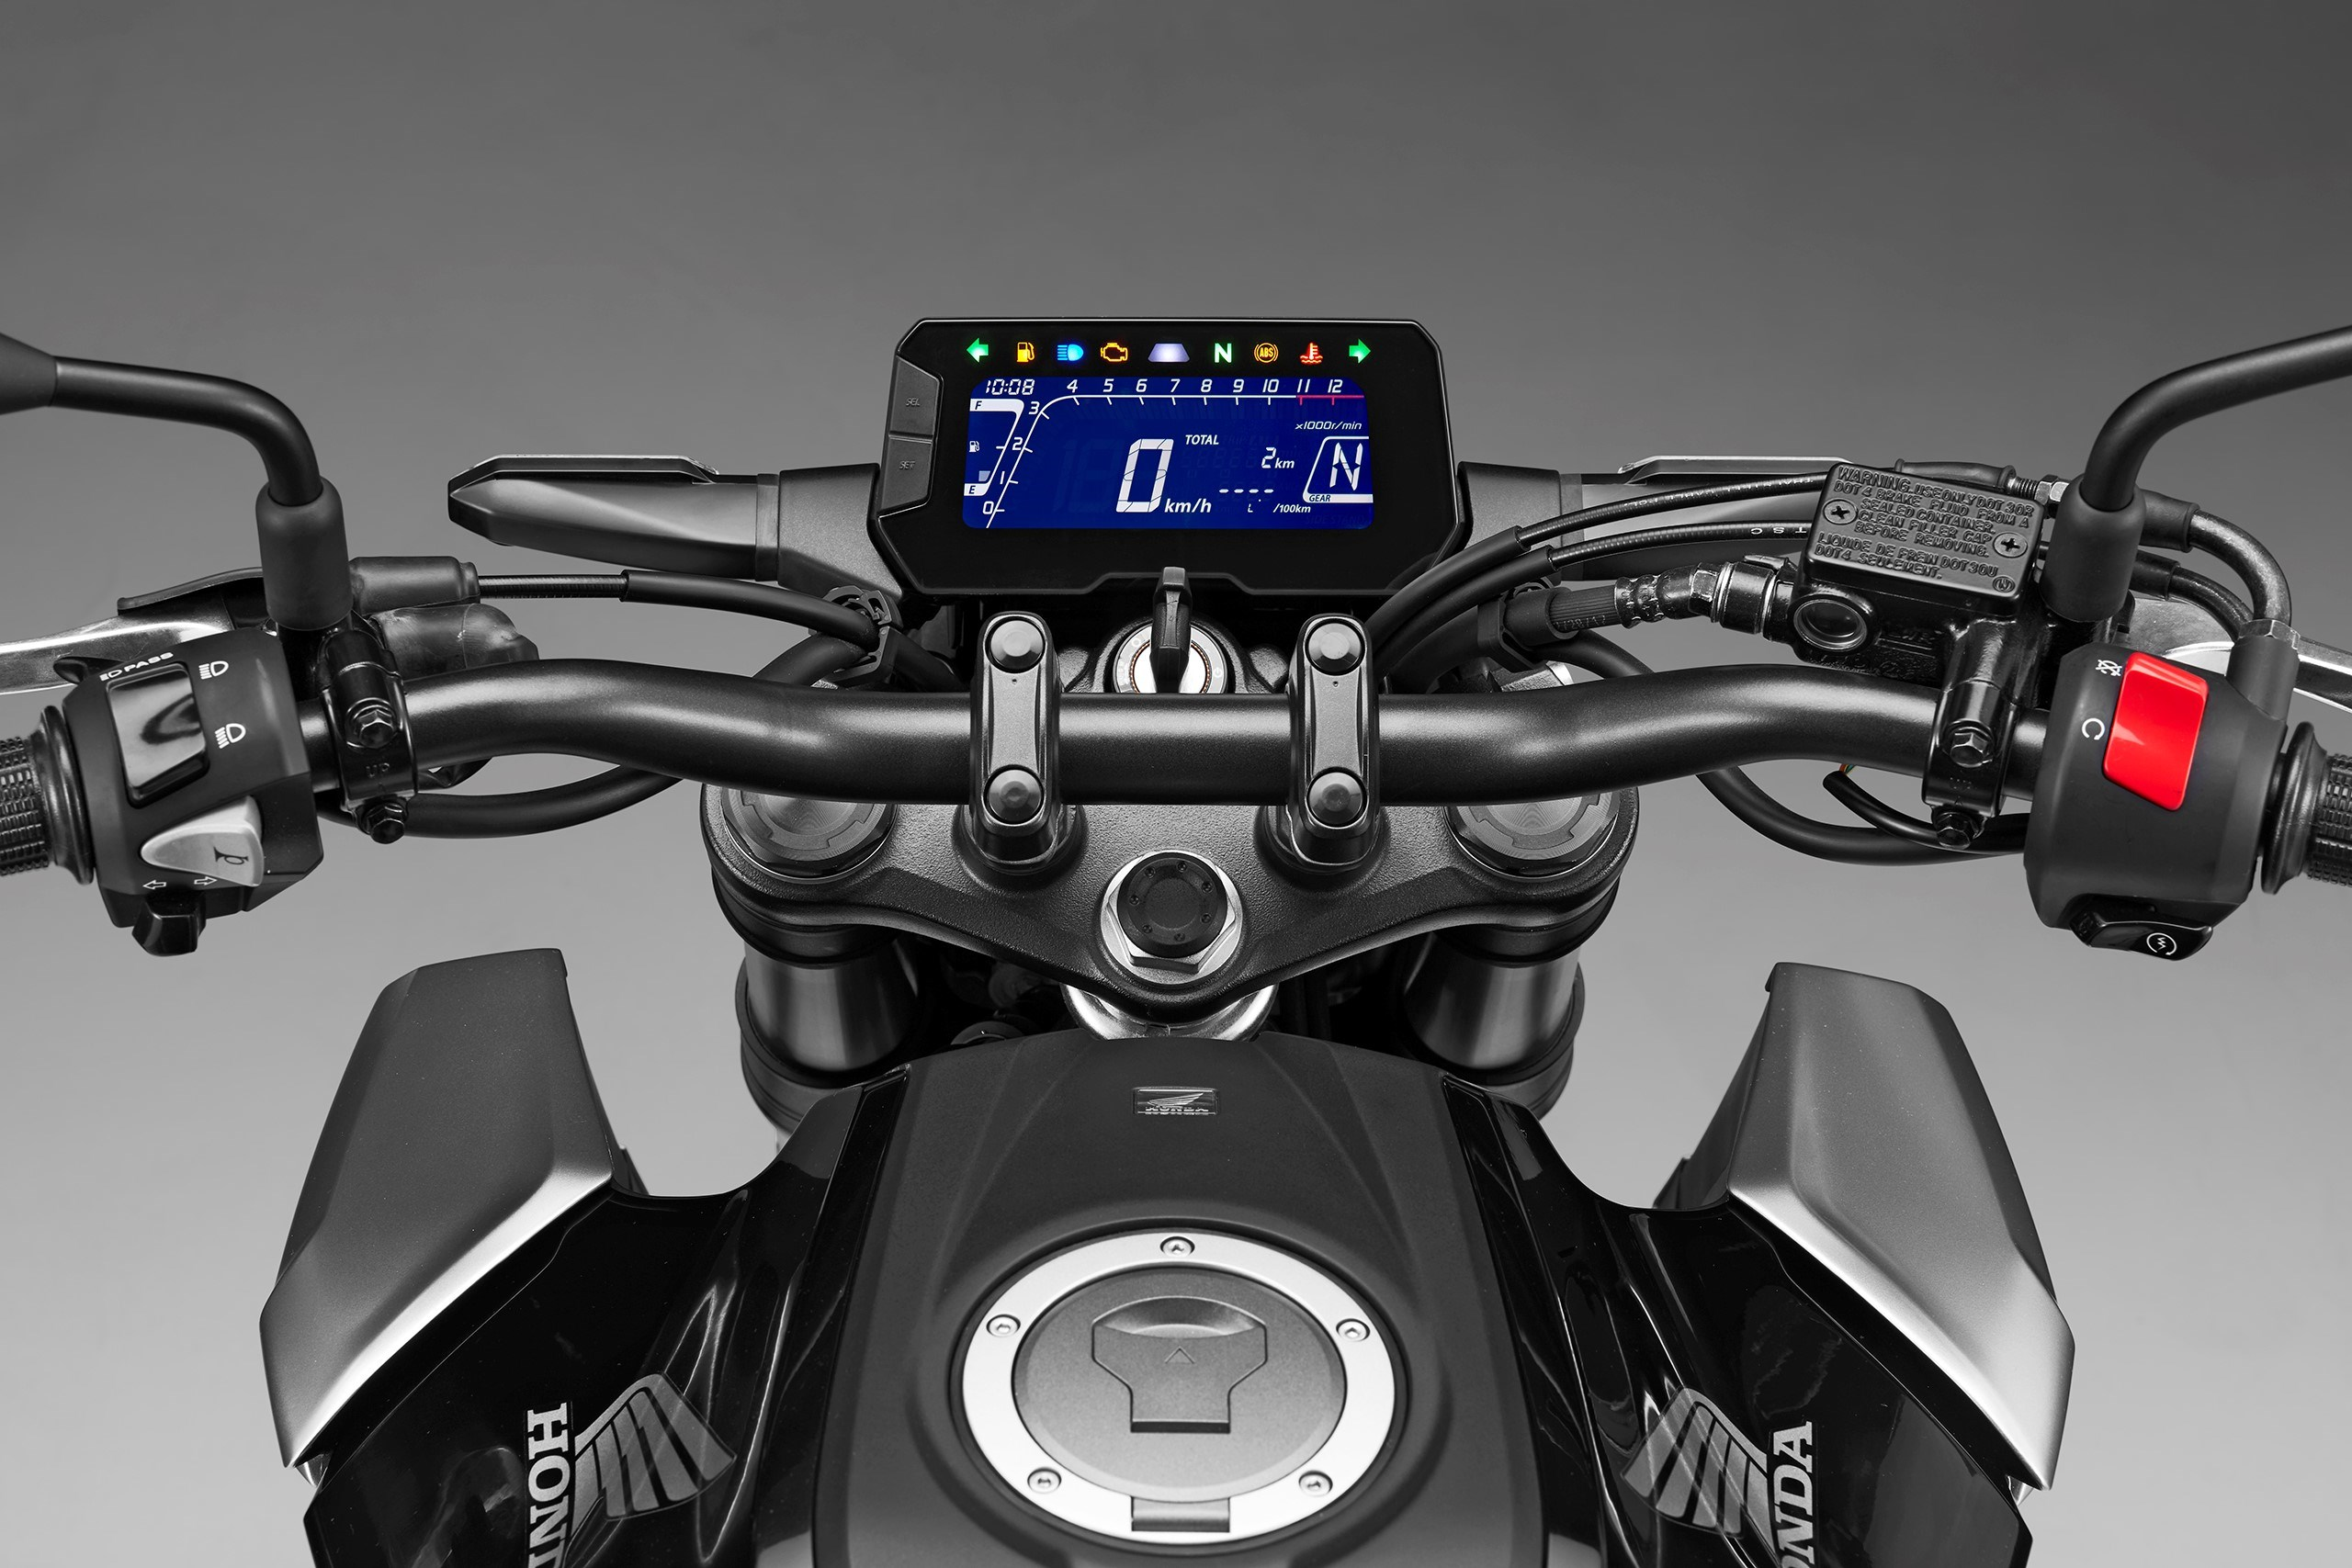 A large LCD screen relays key information to the rider